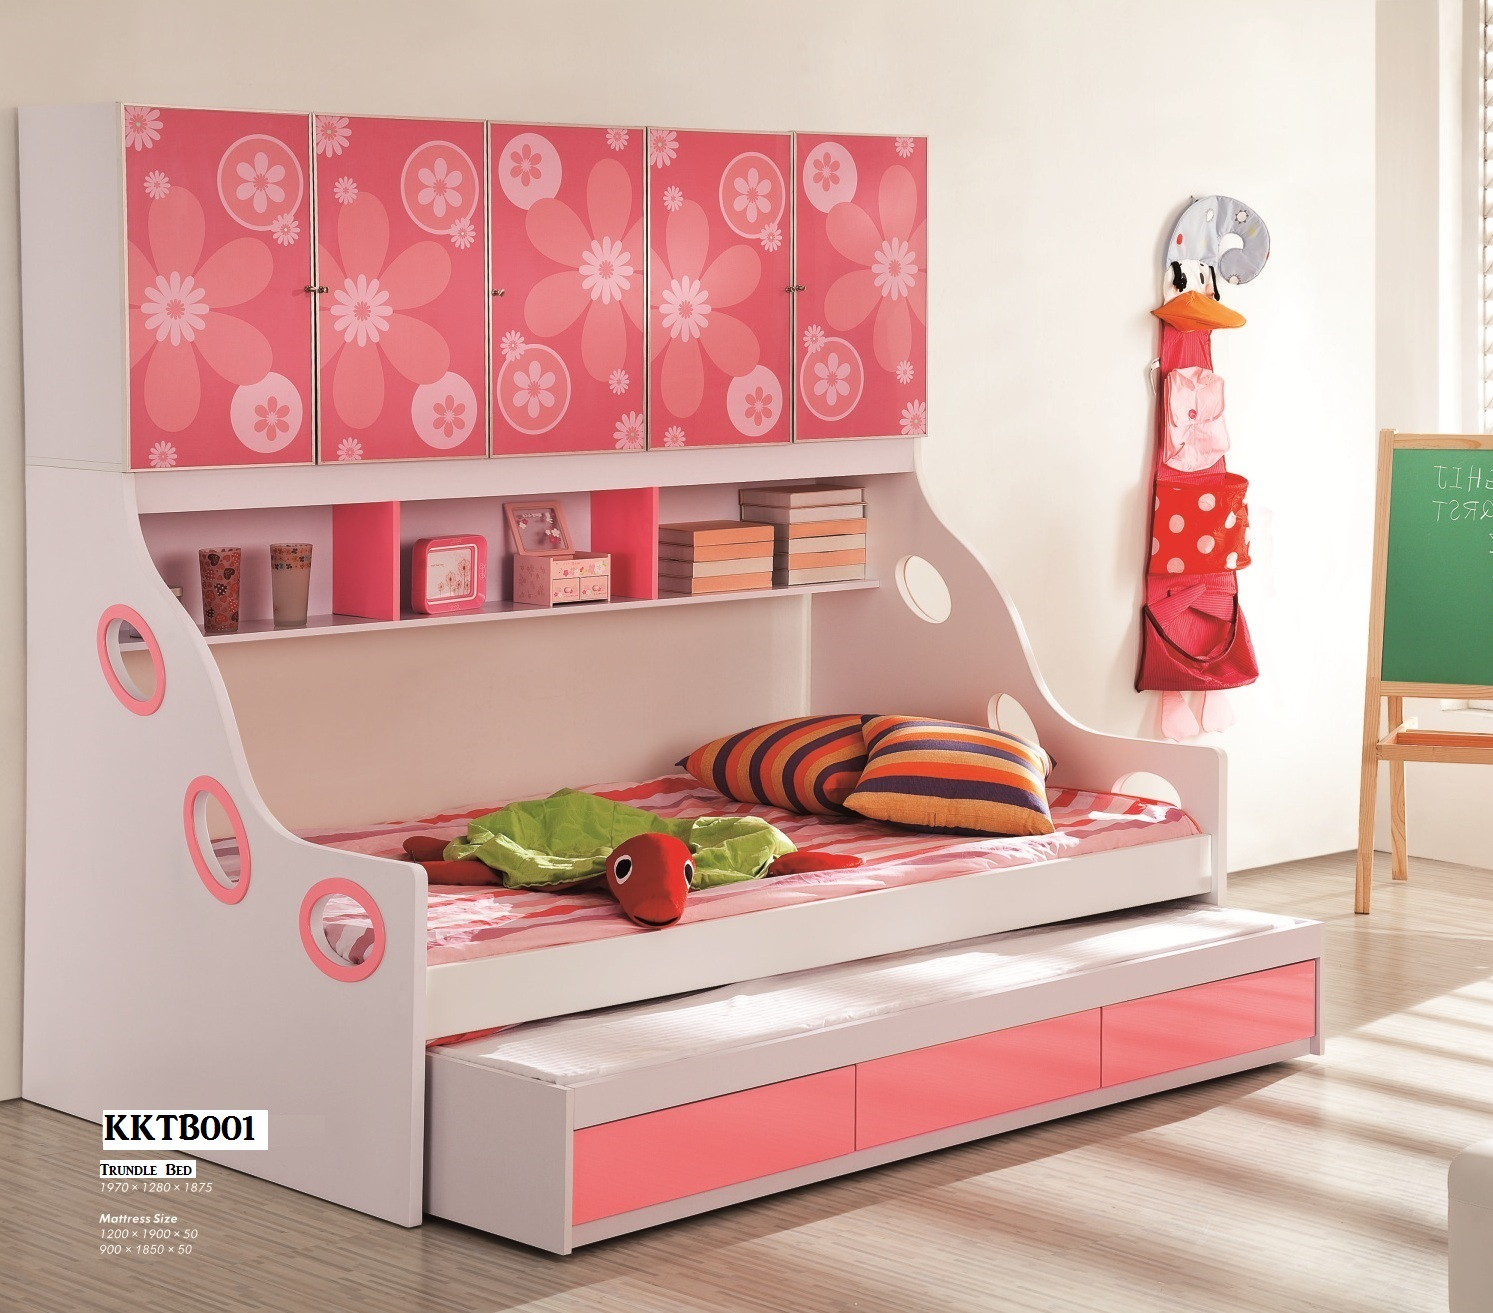 shelf pink bookshelf bedroom bed book and kids bunk blue fun color beds wall mattress wood room armature plus simple stair cute sweet with closed adorable for iddylic